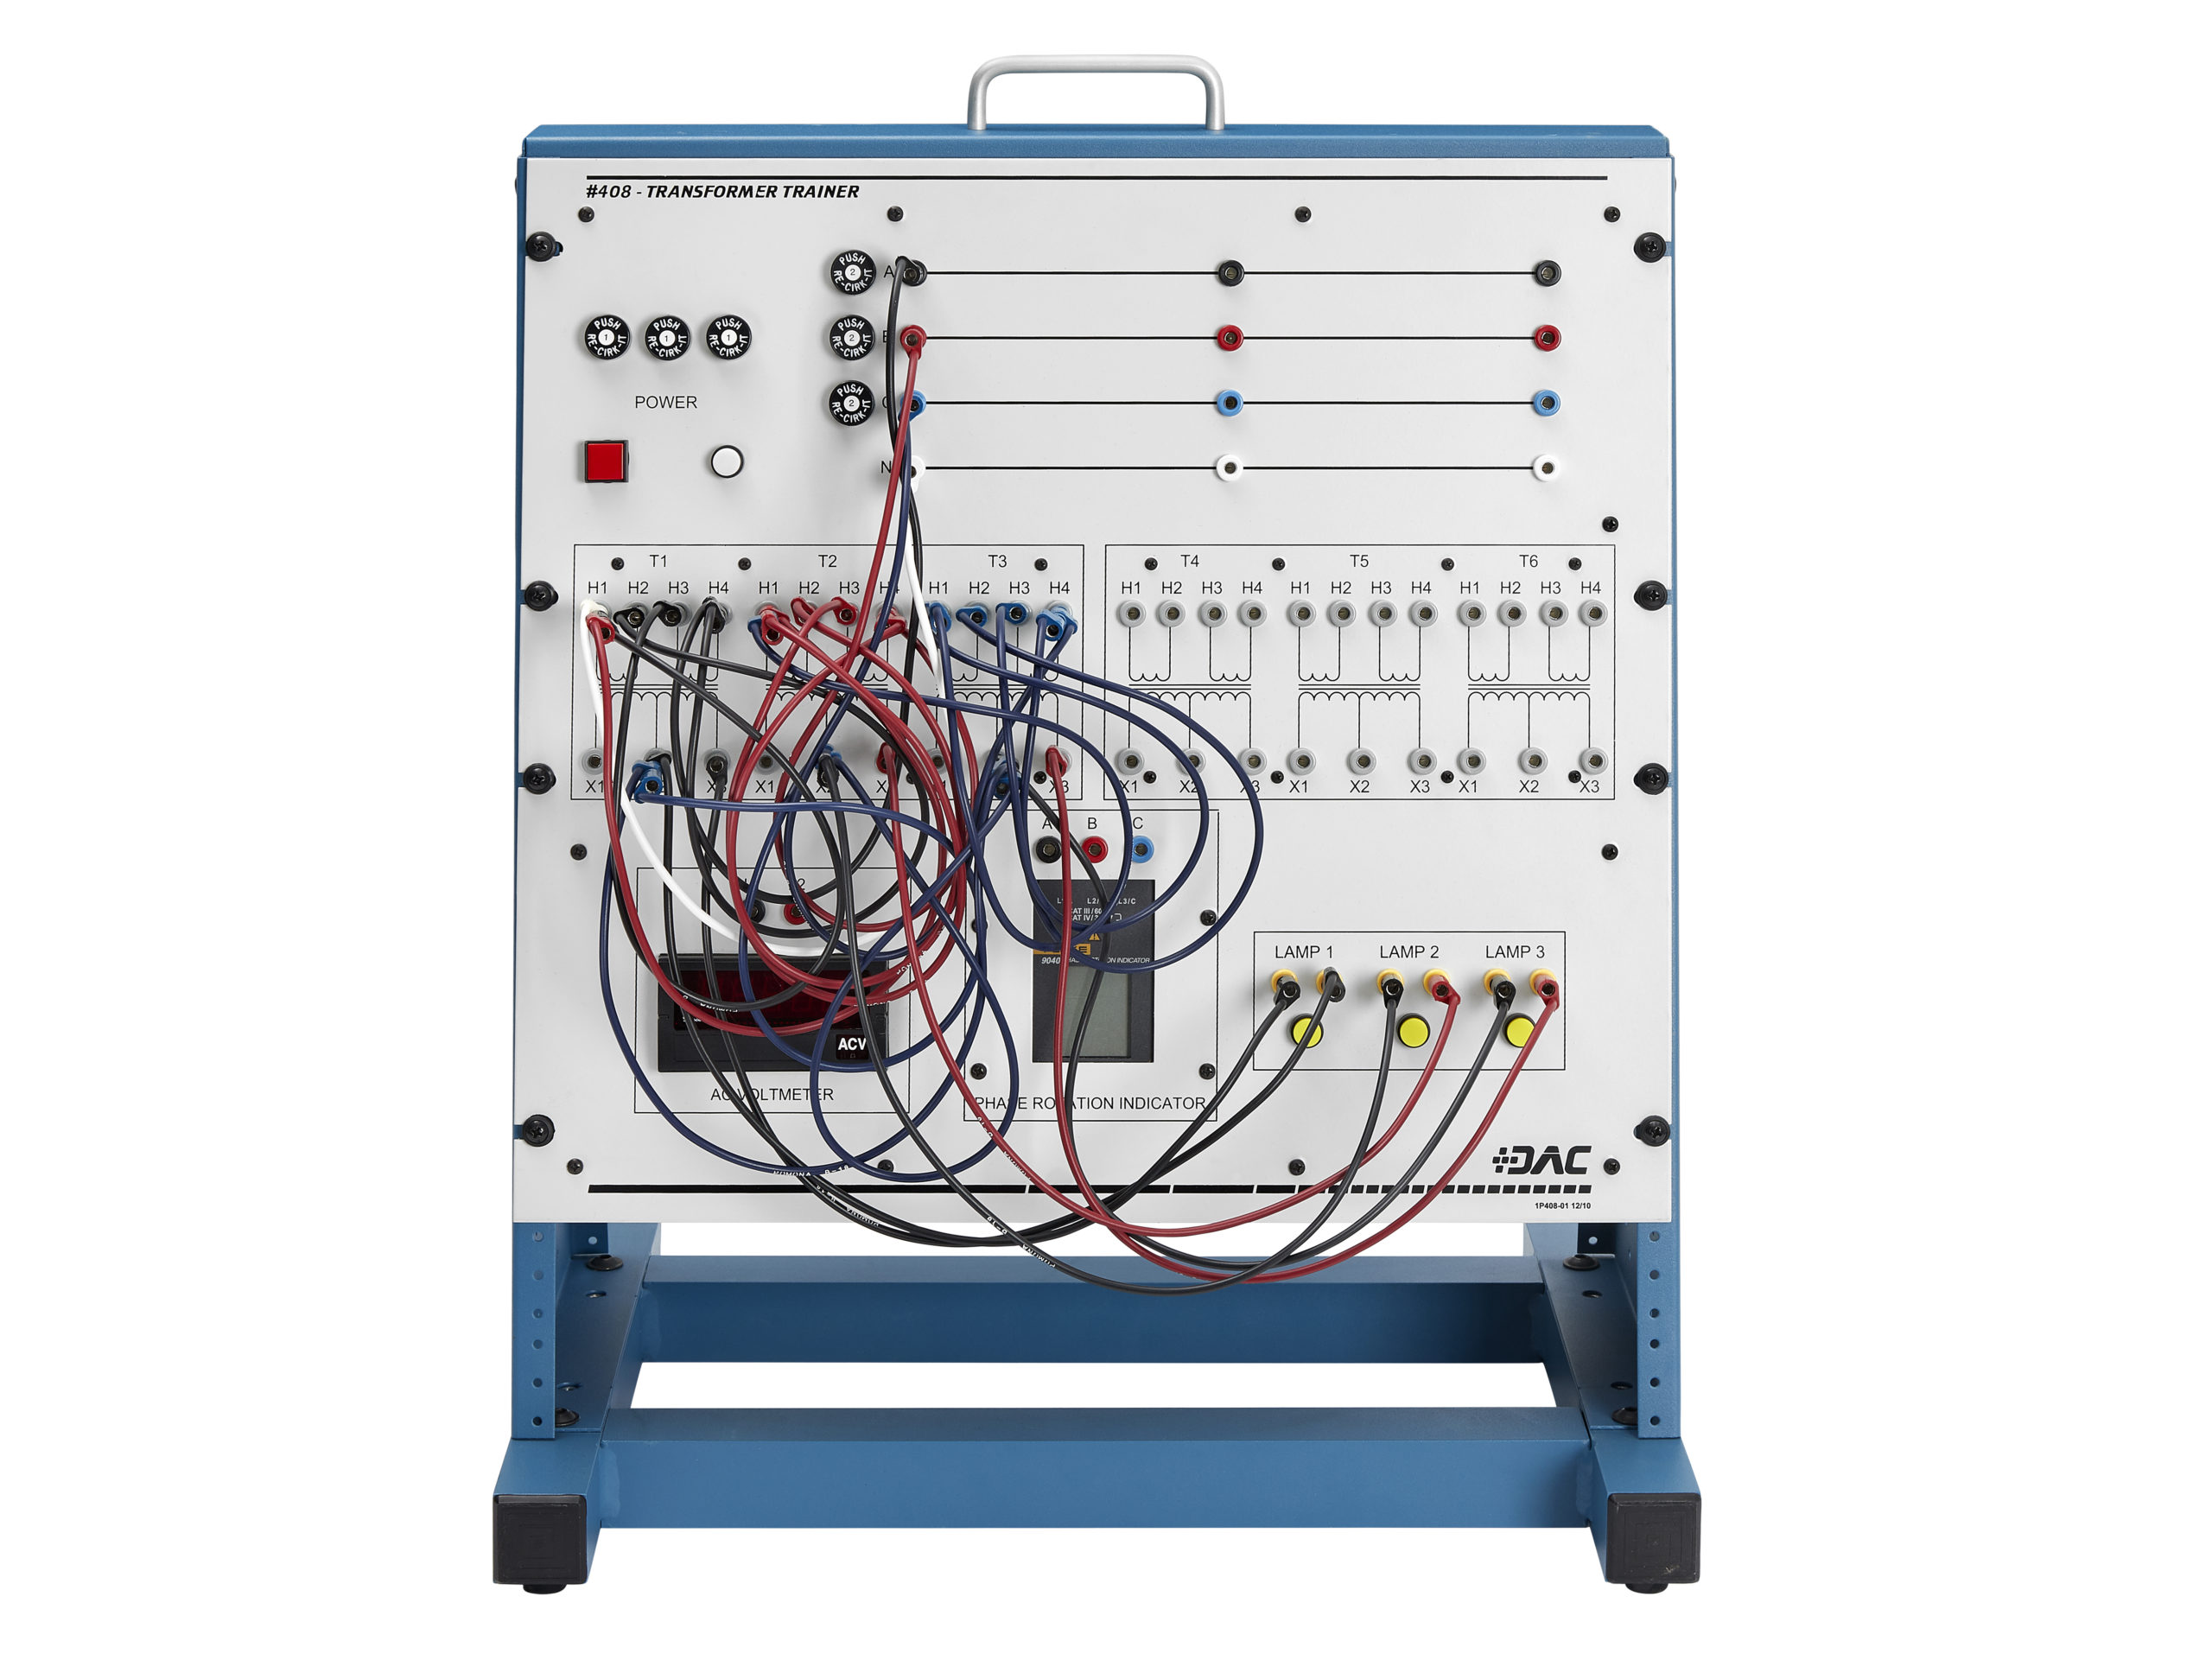 transformer wiring training system